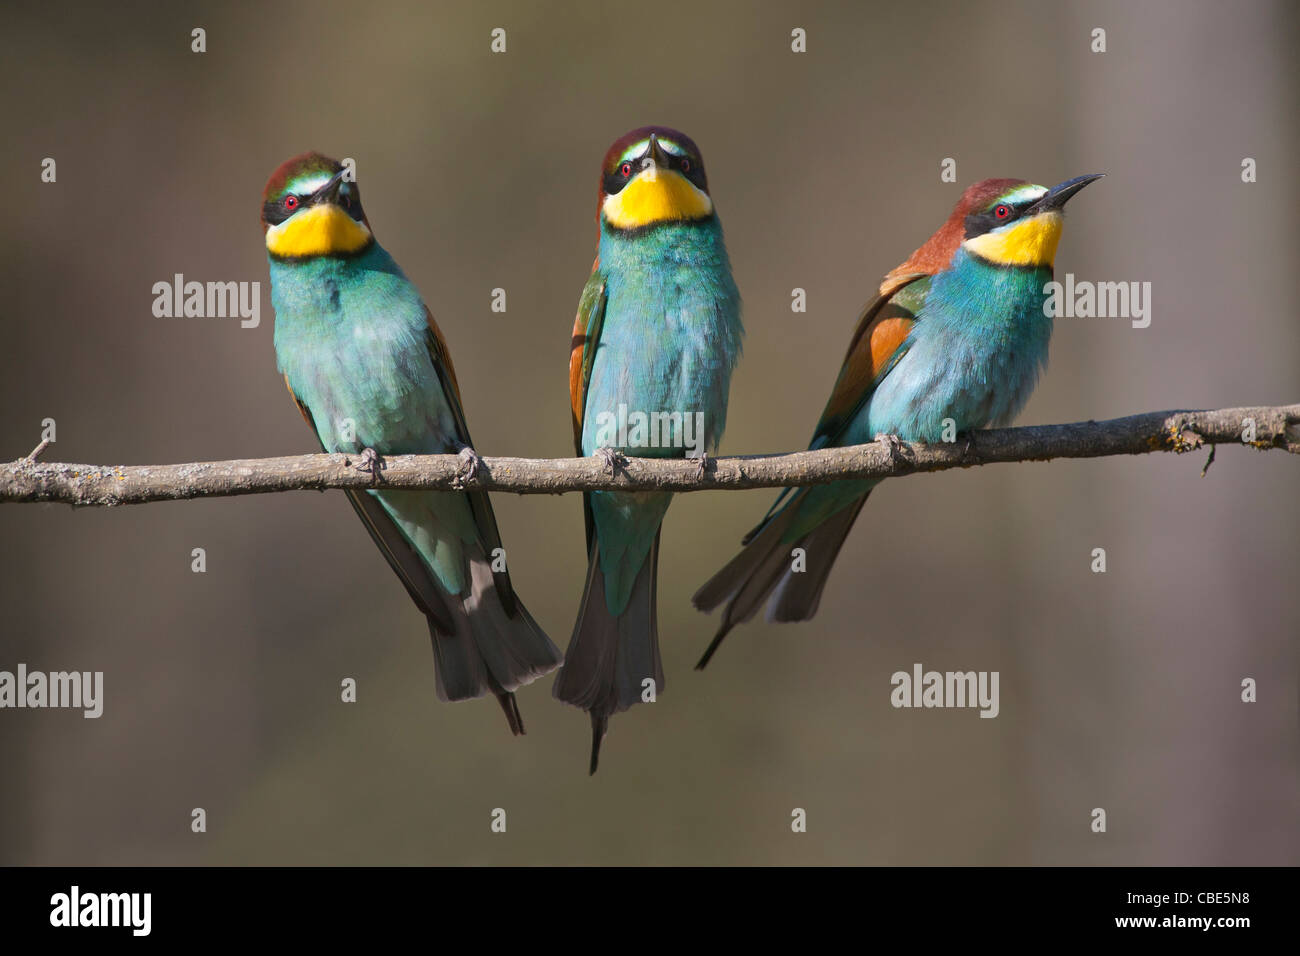 European Bee-eater (Merops apiaster), three perched on stick, Spain - Stock Image